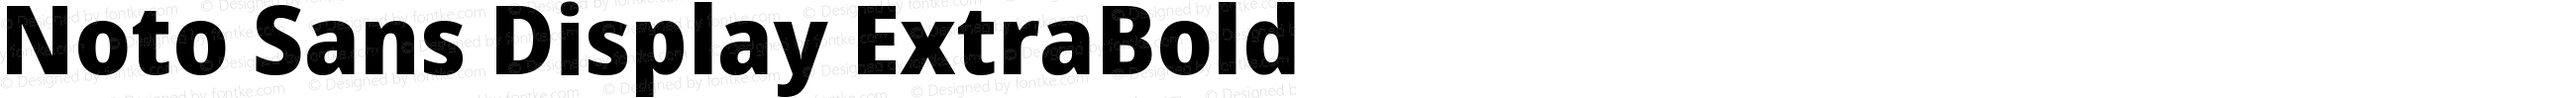 Noto Sans Display ExtraBold